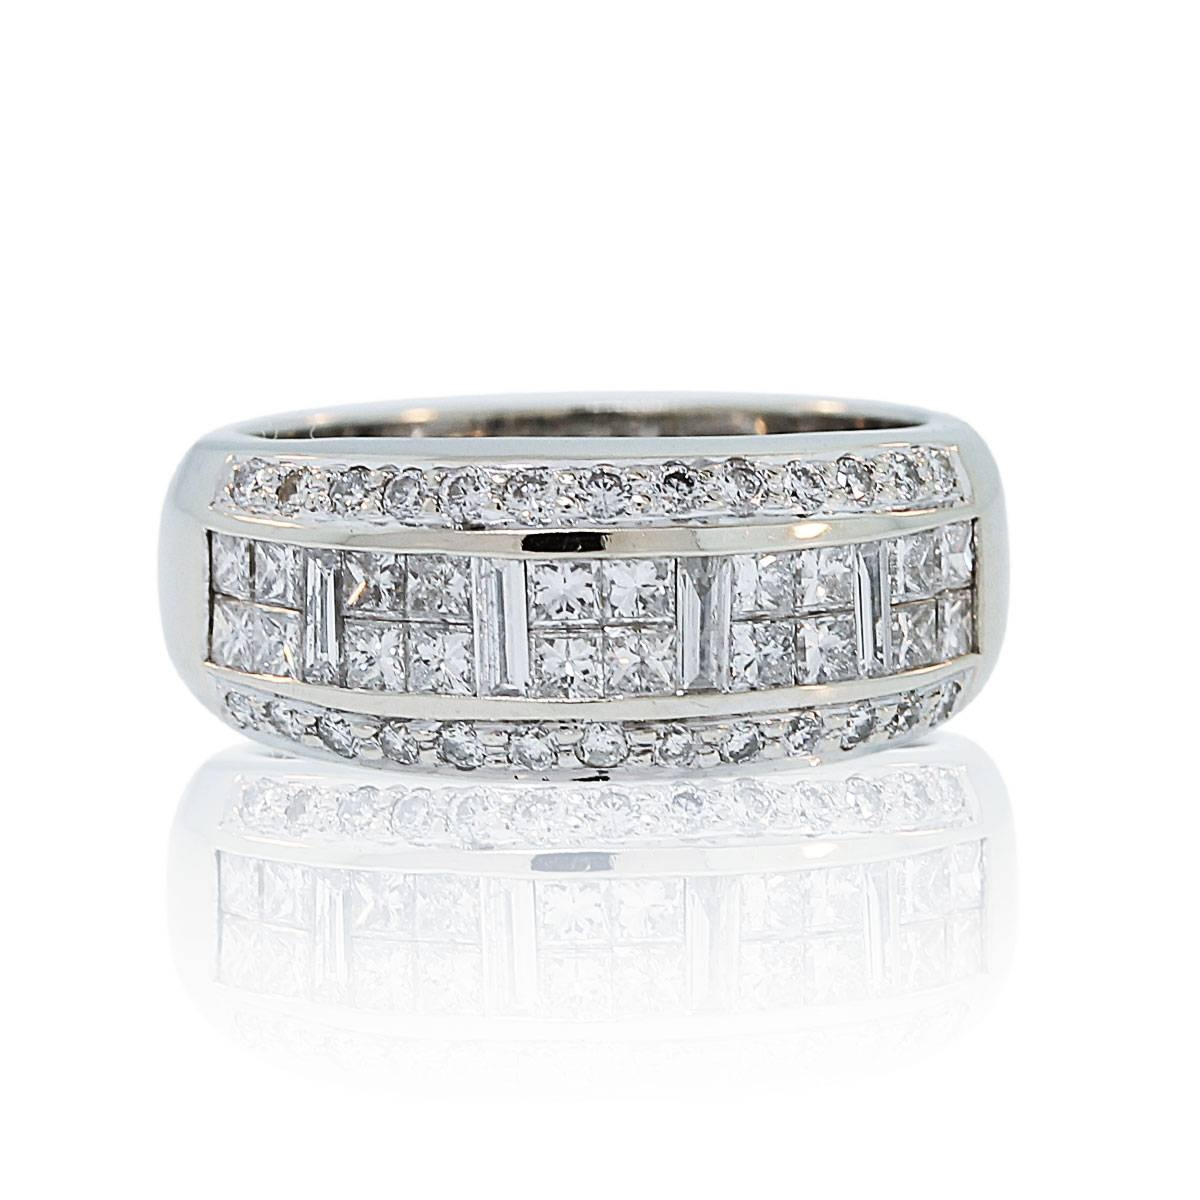 Levian 14K White Gold 1Ctw Diamond Wedding Band Regarding Le Vian Wedding Bands (Gallery 13 of 15)